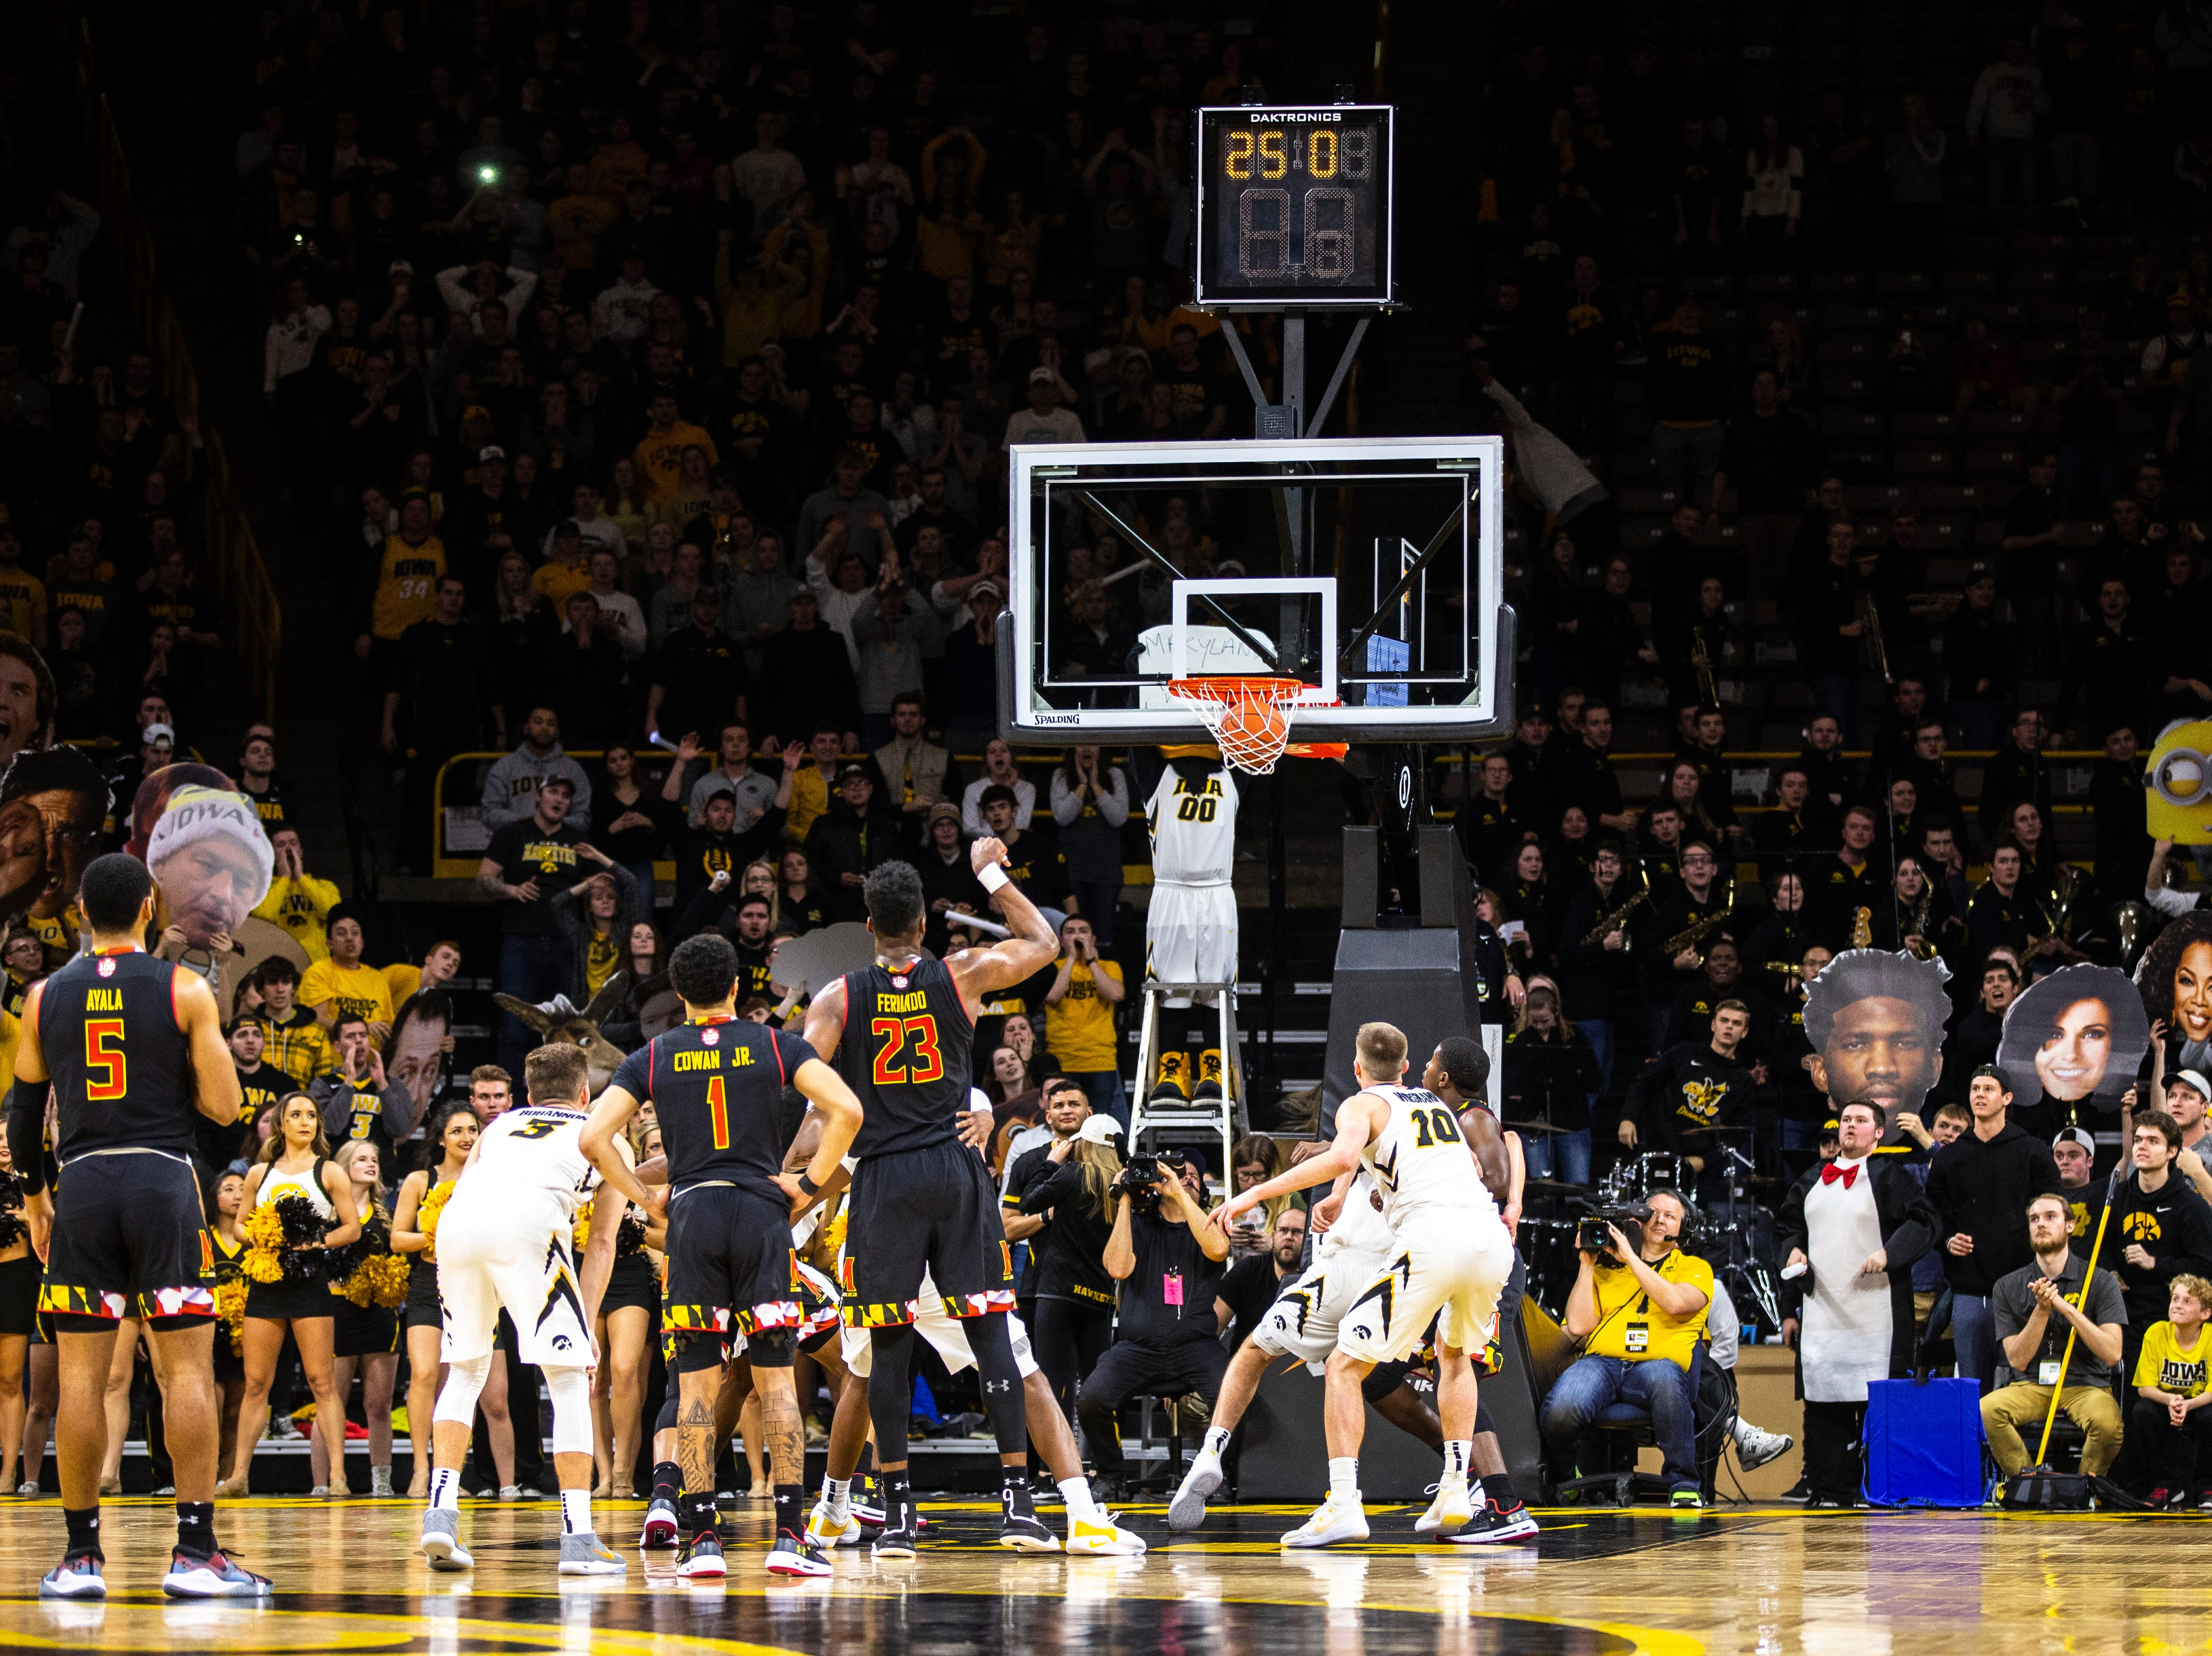 Maryland forward Bruno Fernando (23) makes a free throw with 25 seconds remaining during a NCAA Big Ten Conference men's basketball game on Tuesday, Feb. 19, 2019 at Carver-Hawkeye Arena in Iowa City, Iowa.